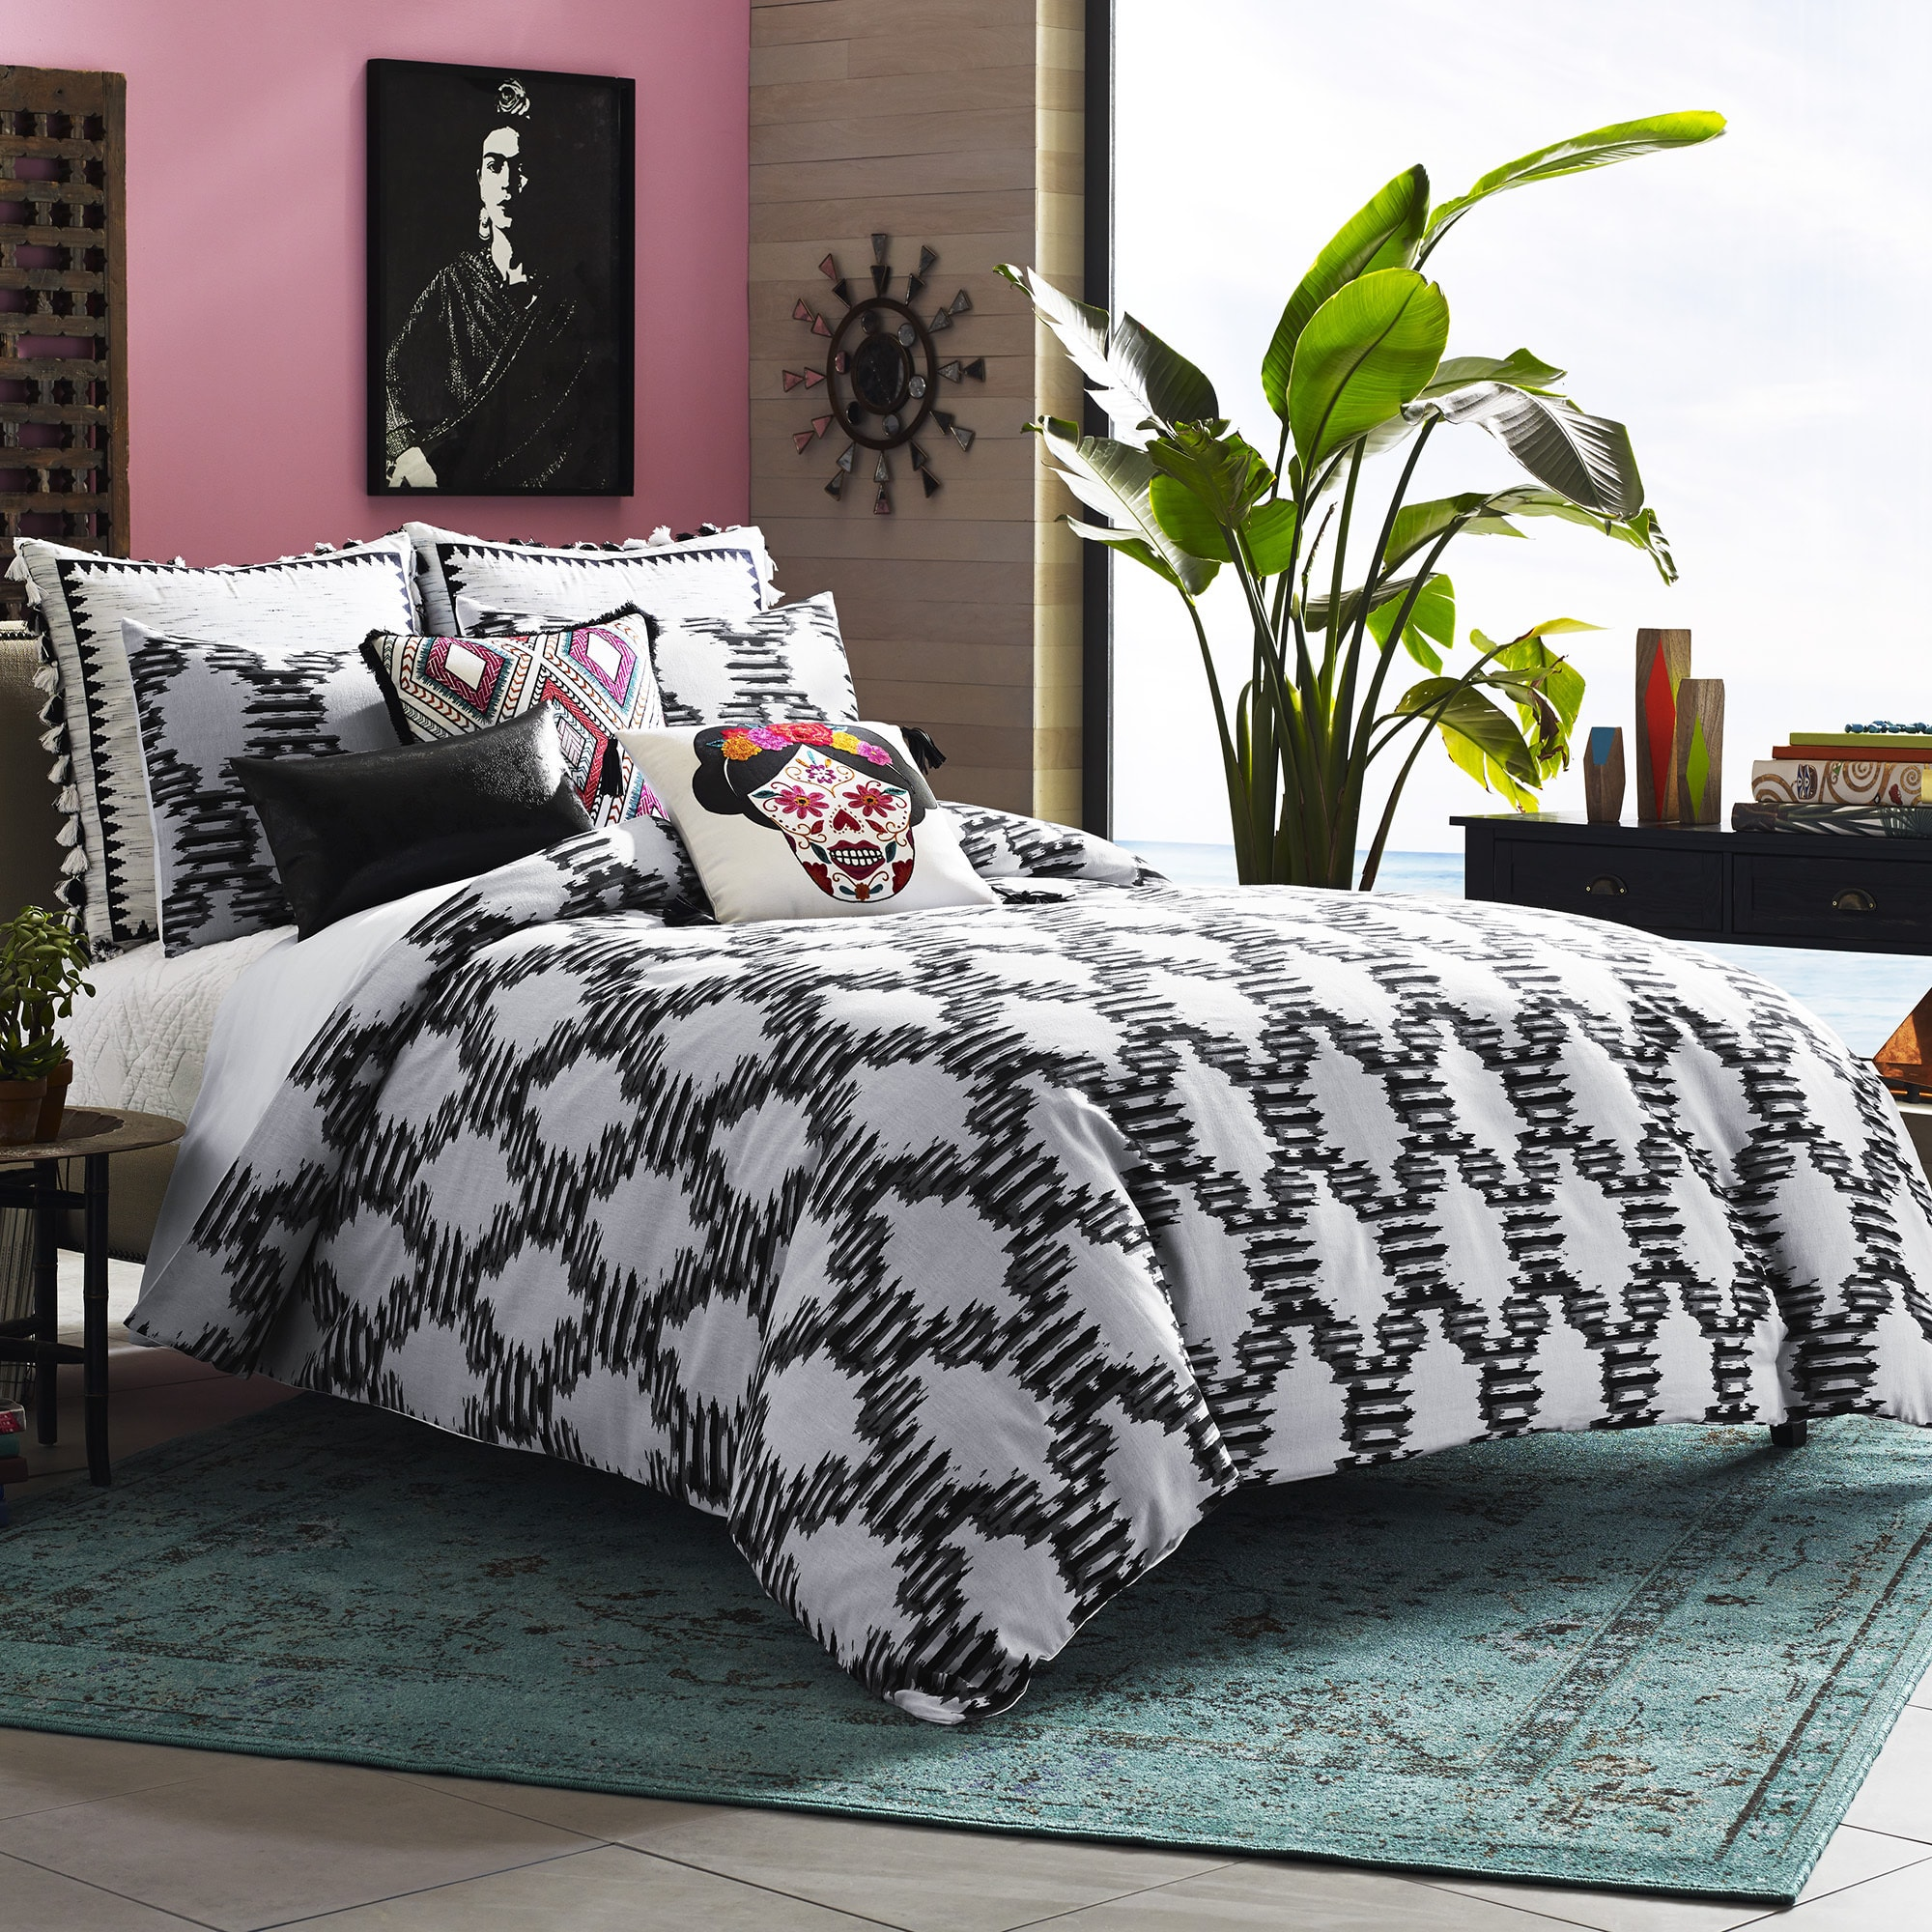 Ellery Homestyles Blissliving Home Zocalo 3-piece Duvet Cover Set